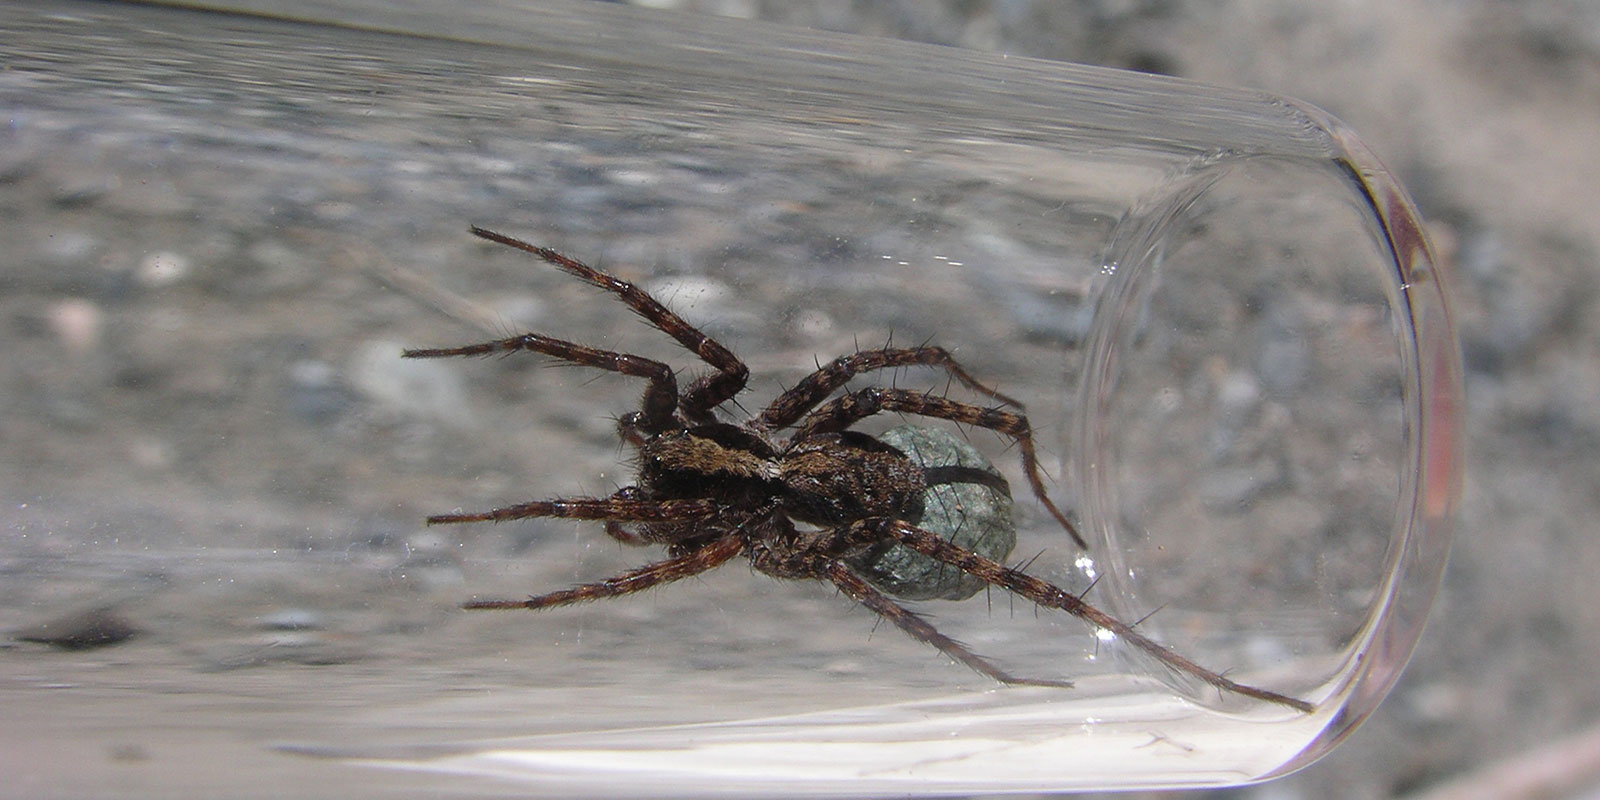 A large wolf spider in a clear glass container